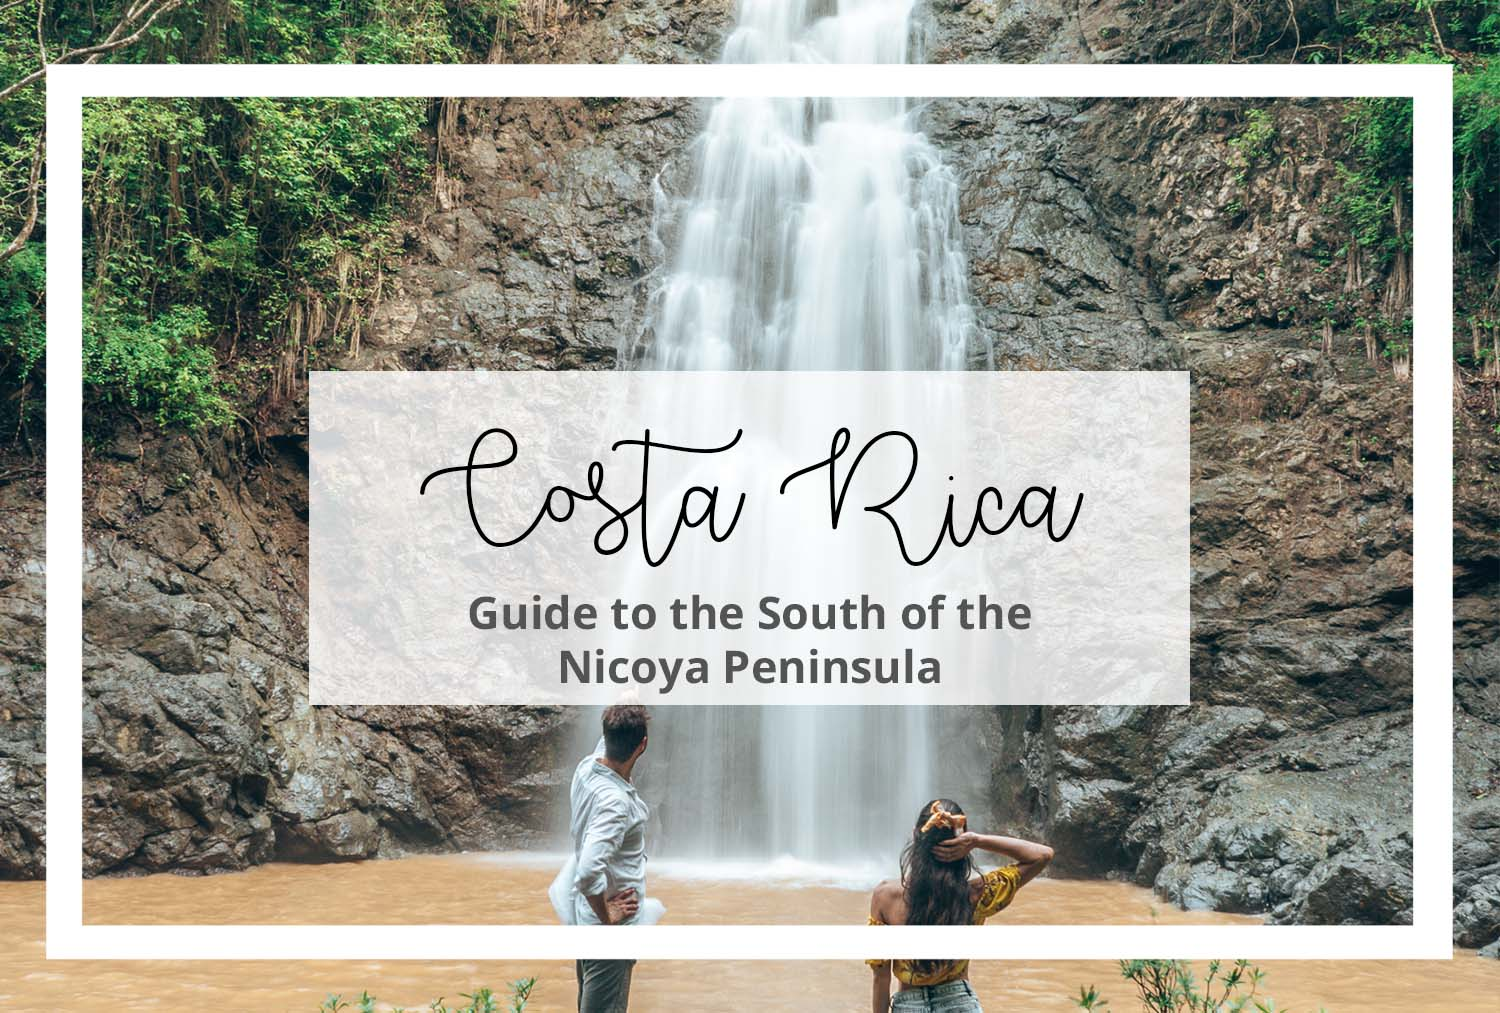 Guide to Costa Rica south nicoya peninsula